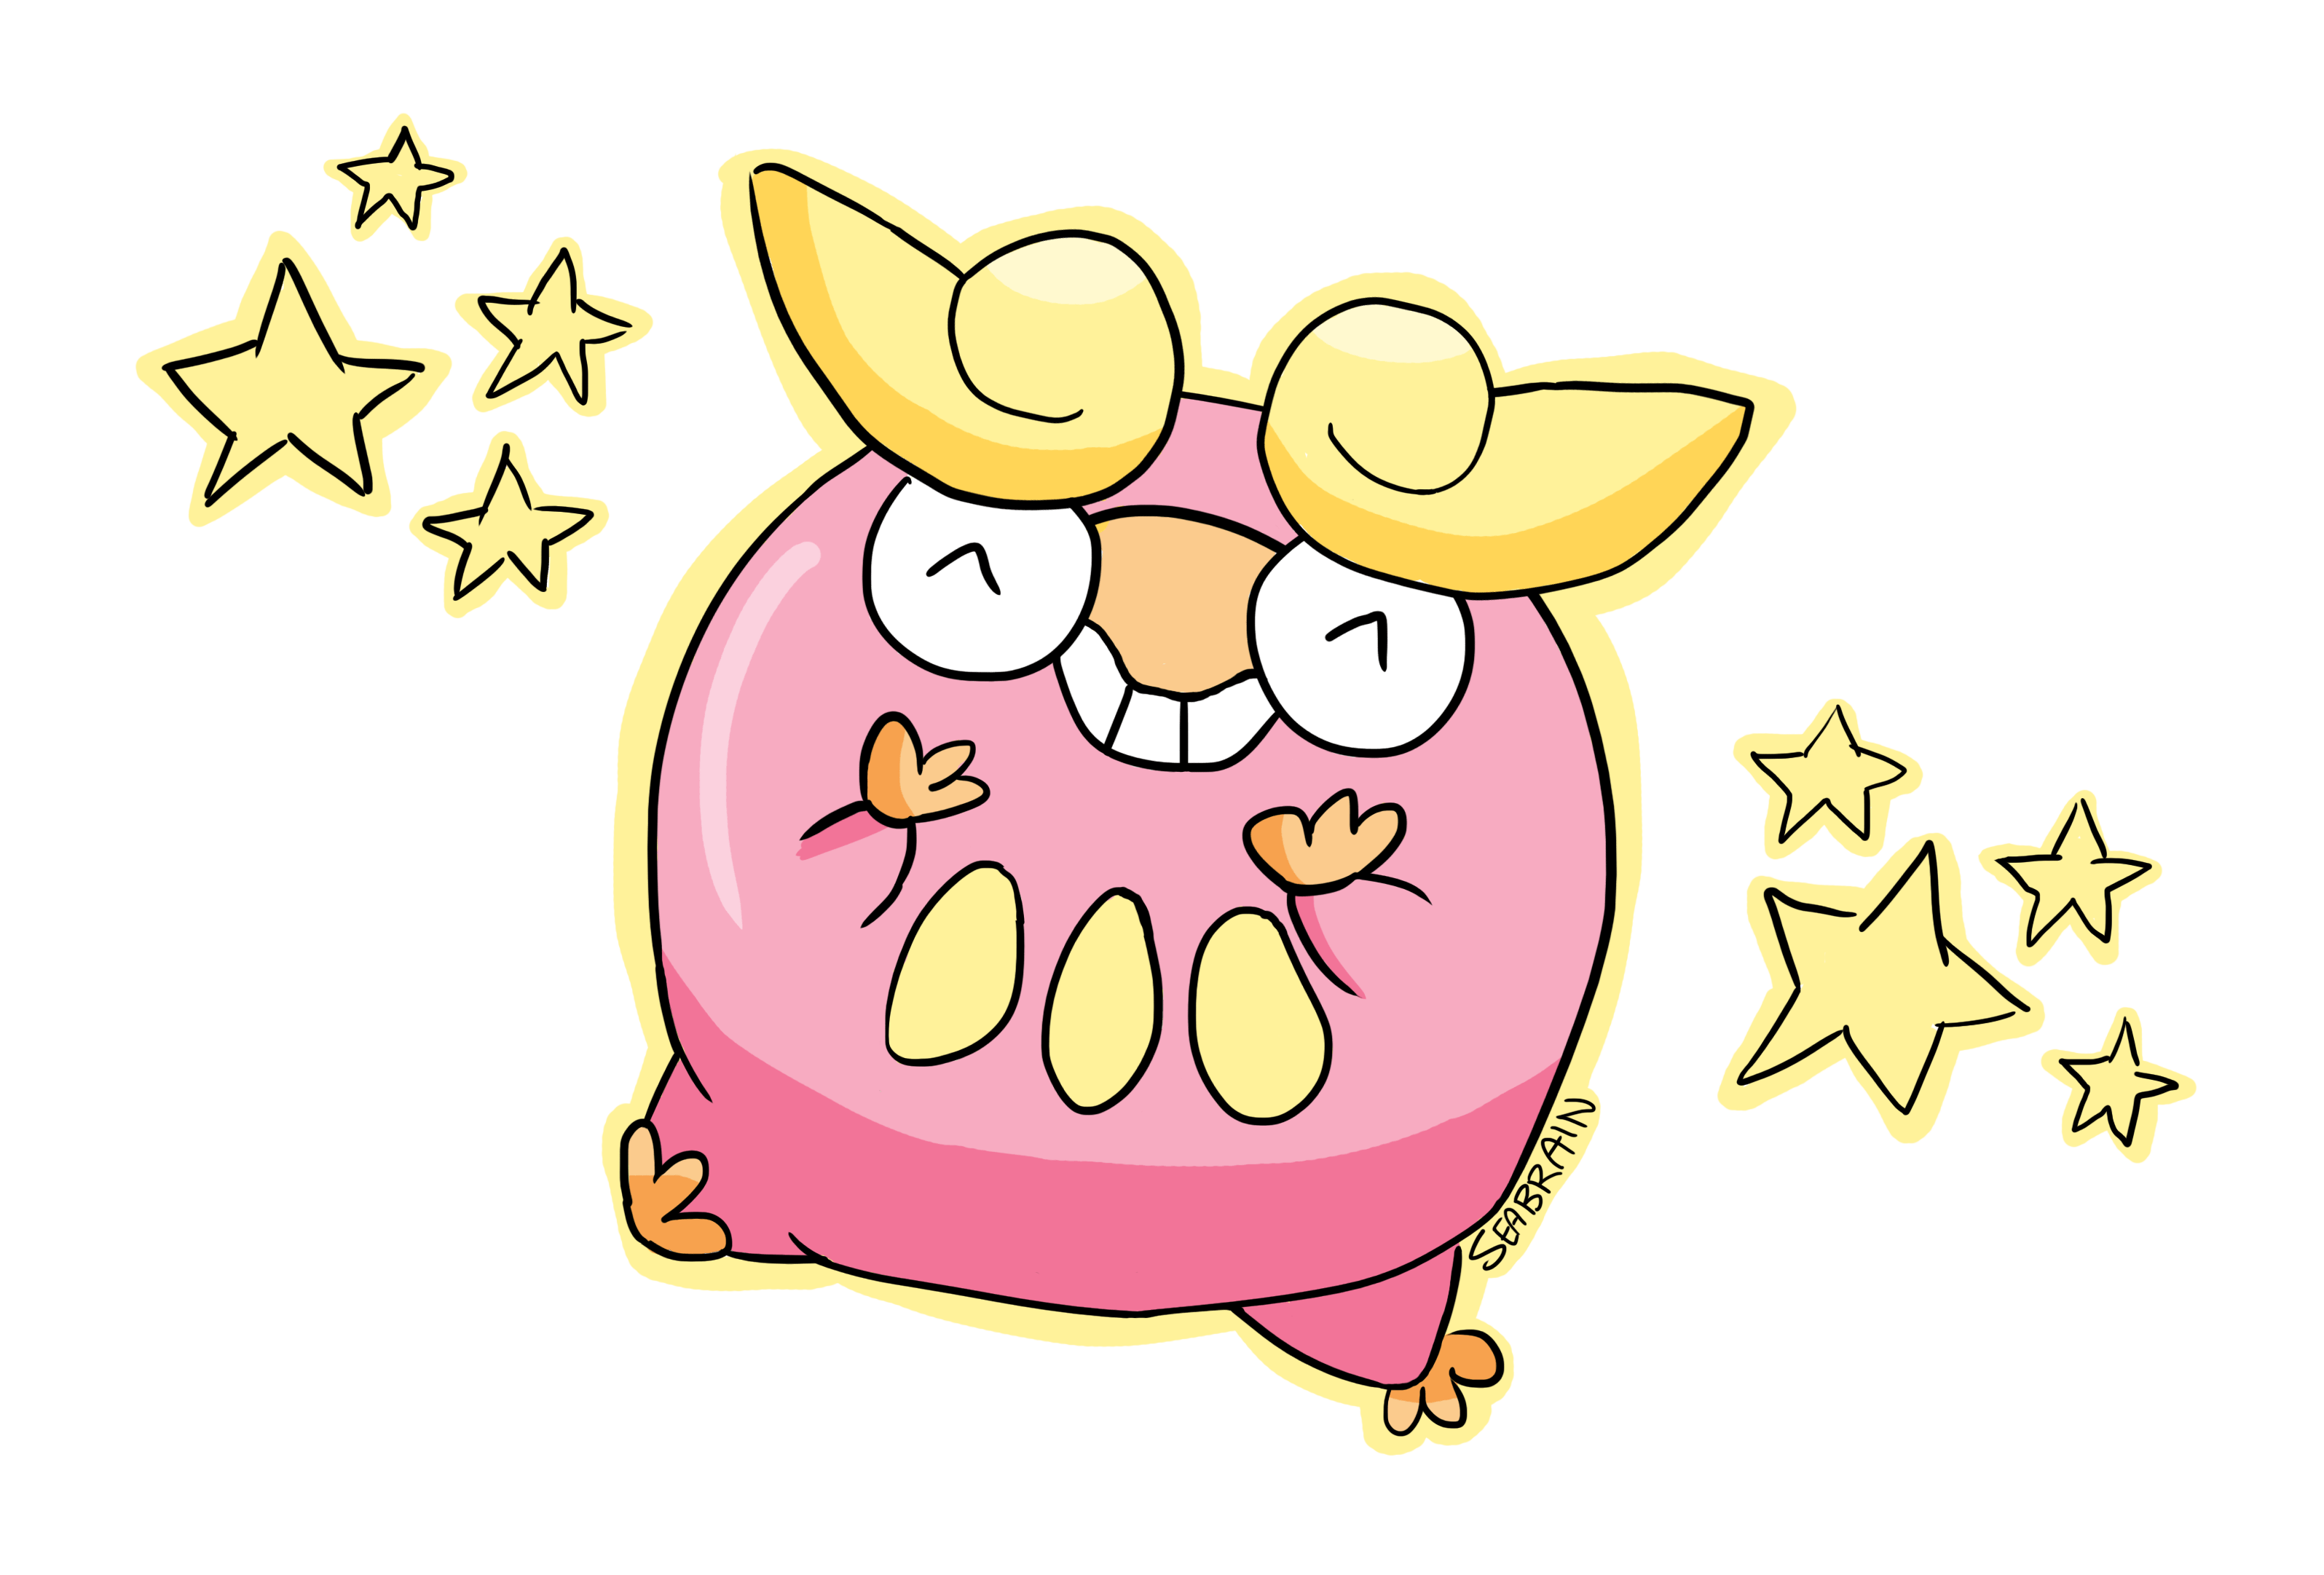 Shiny Darumaka! by seabrain on DeviantArt